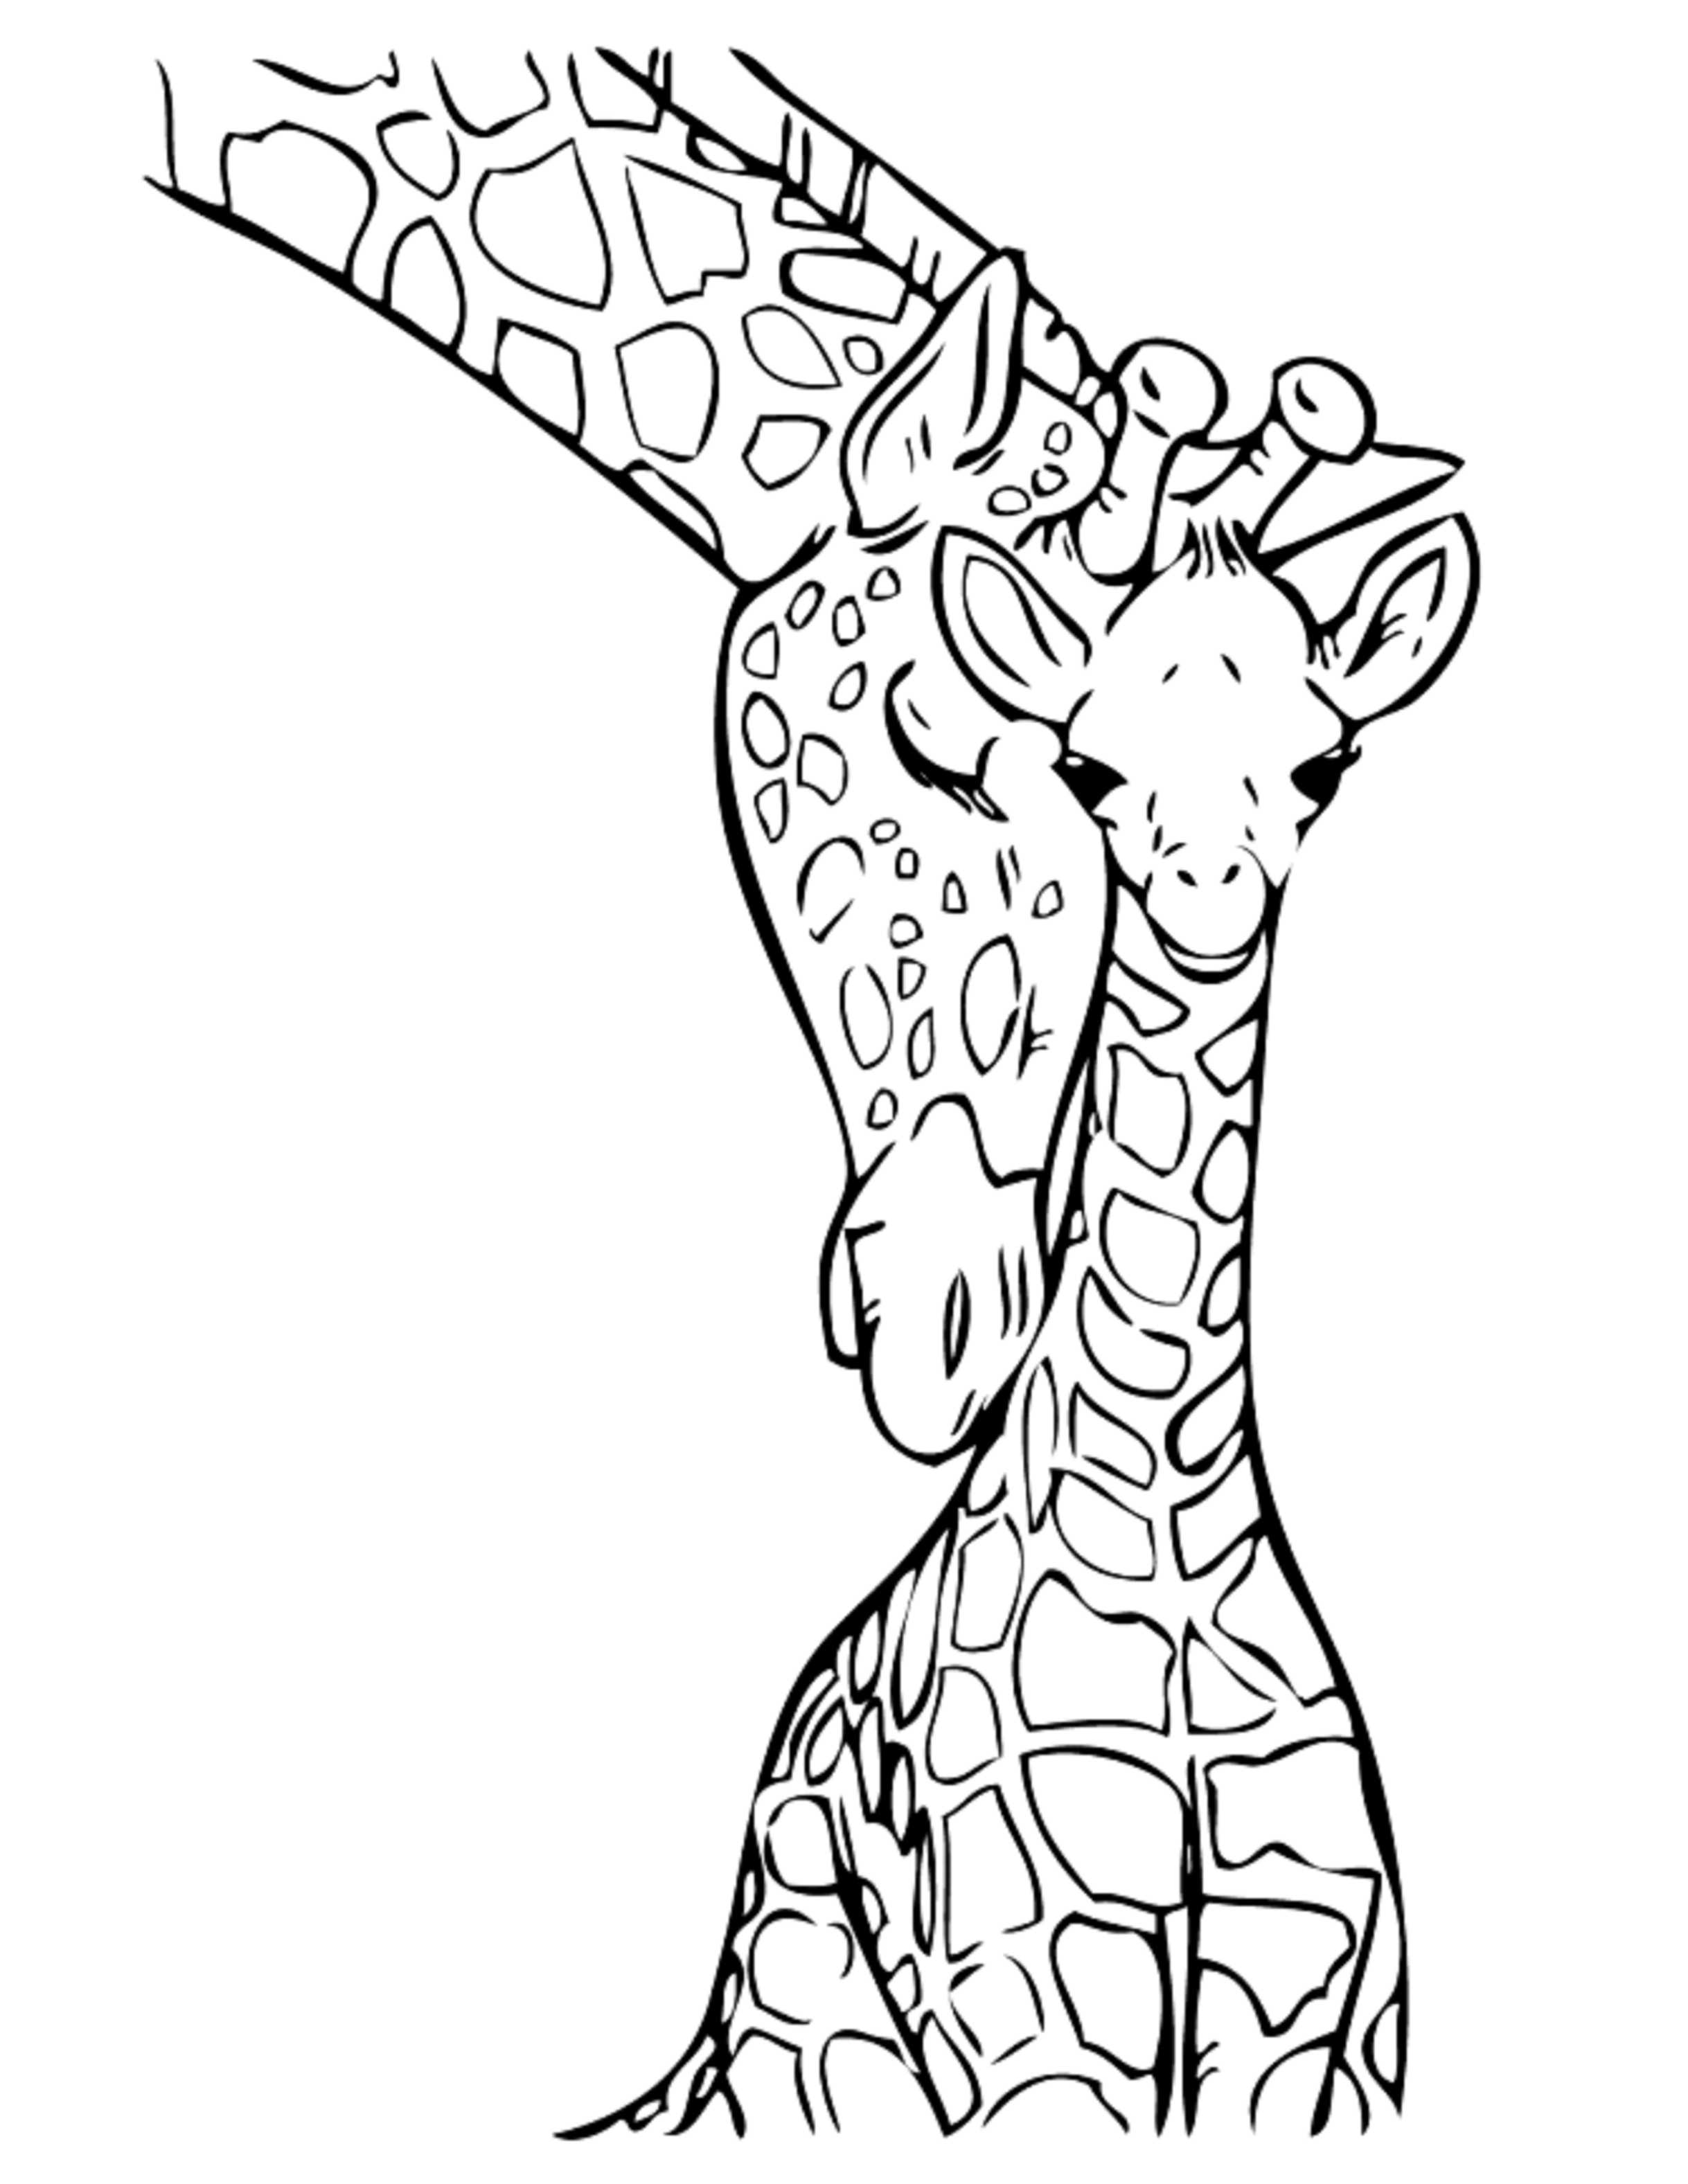 cute giraffe coloring pages cute baby giraffe drawing at getdrawings free download pages coloring giraffe cute